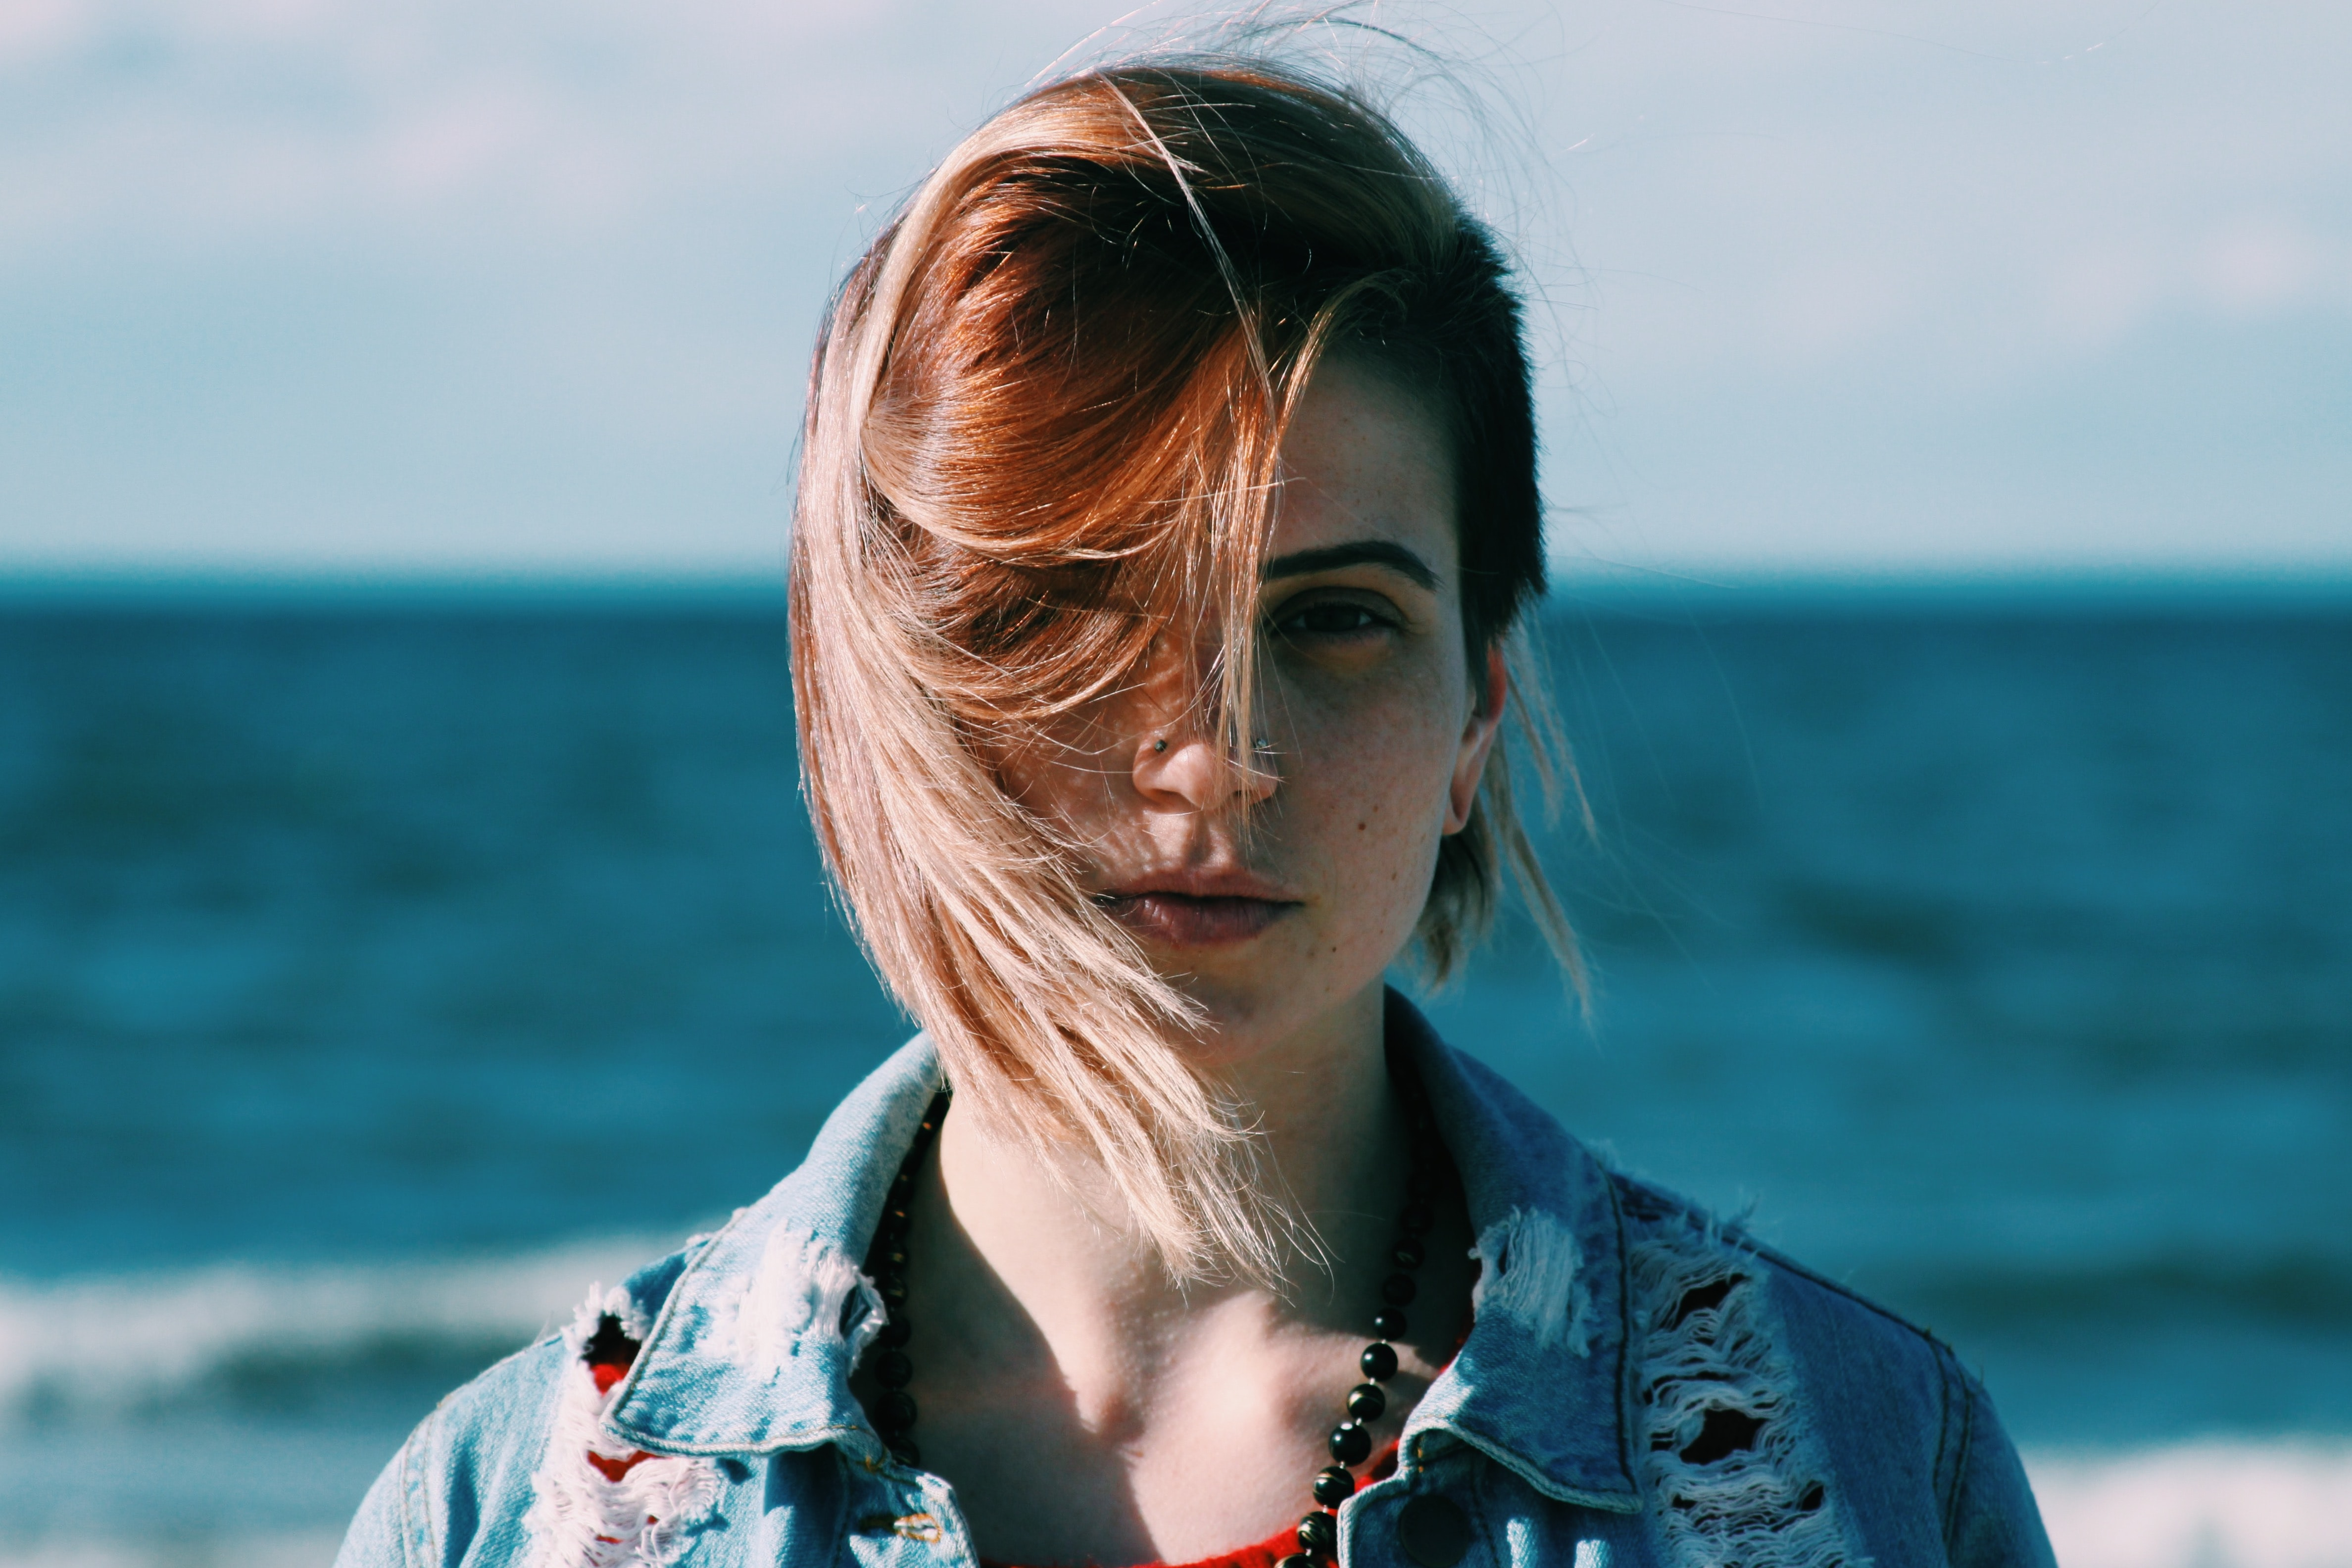 woman in brown denim jacket standing near on beach during daytime shallow focus photography